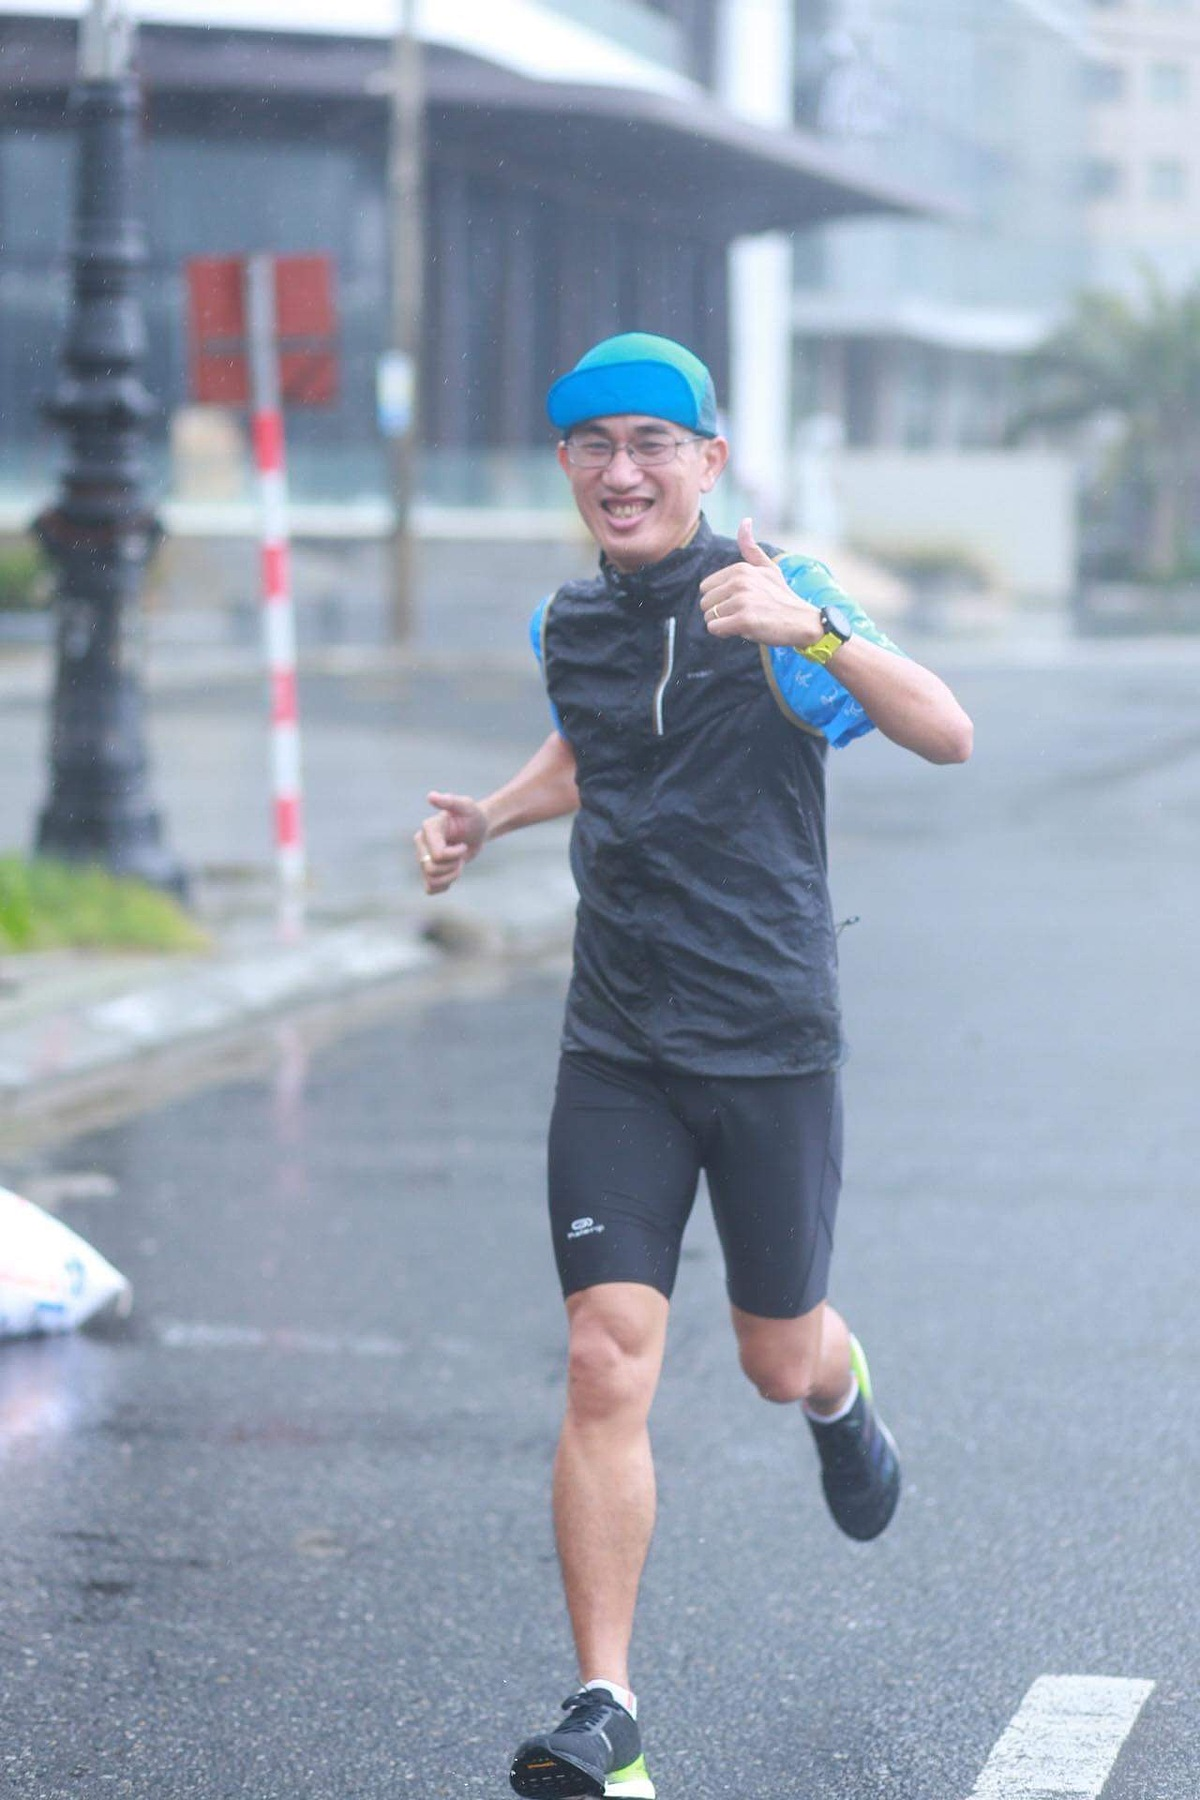 Trung Tran practices every day, even during the rainy sessions in Hue.